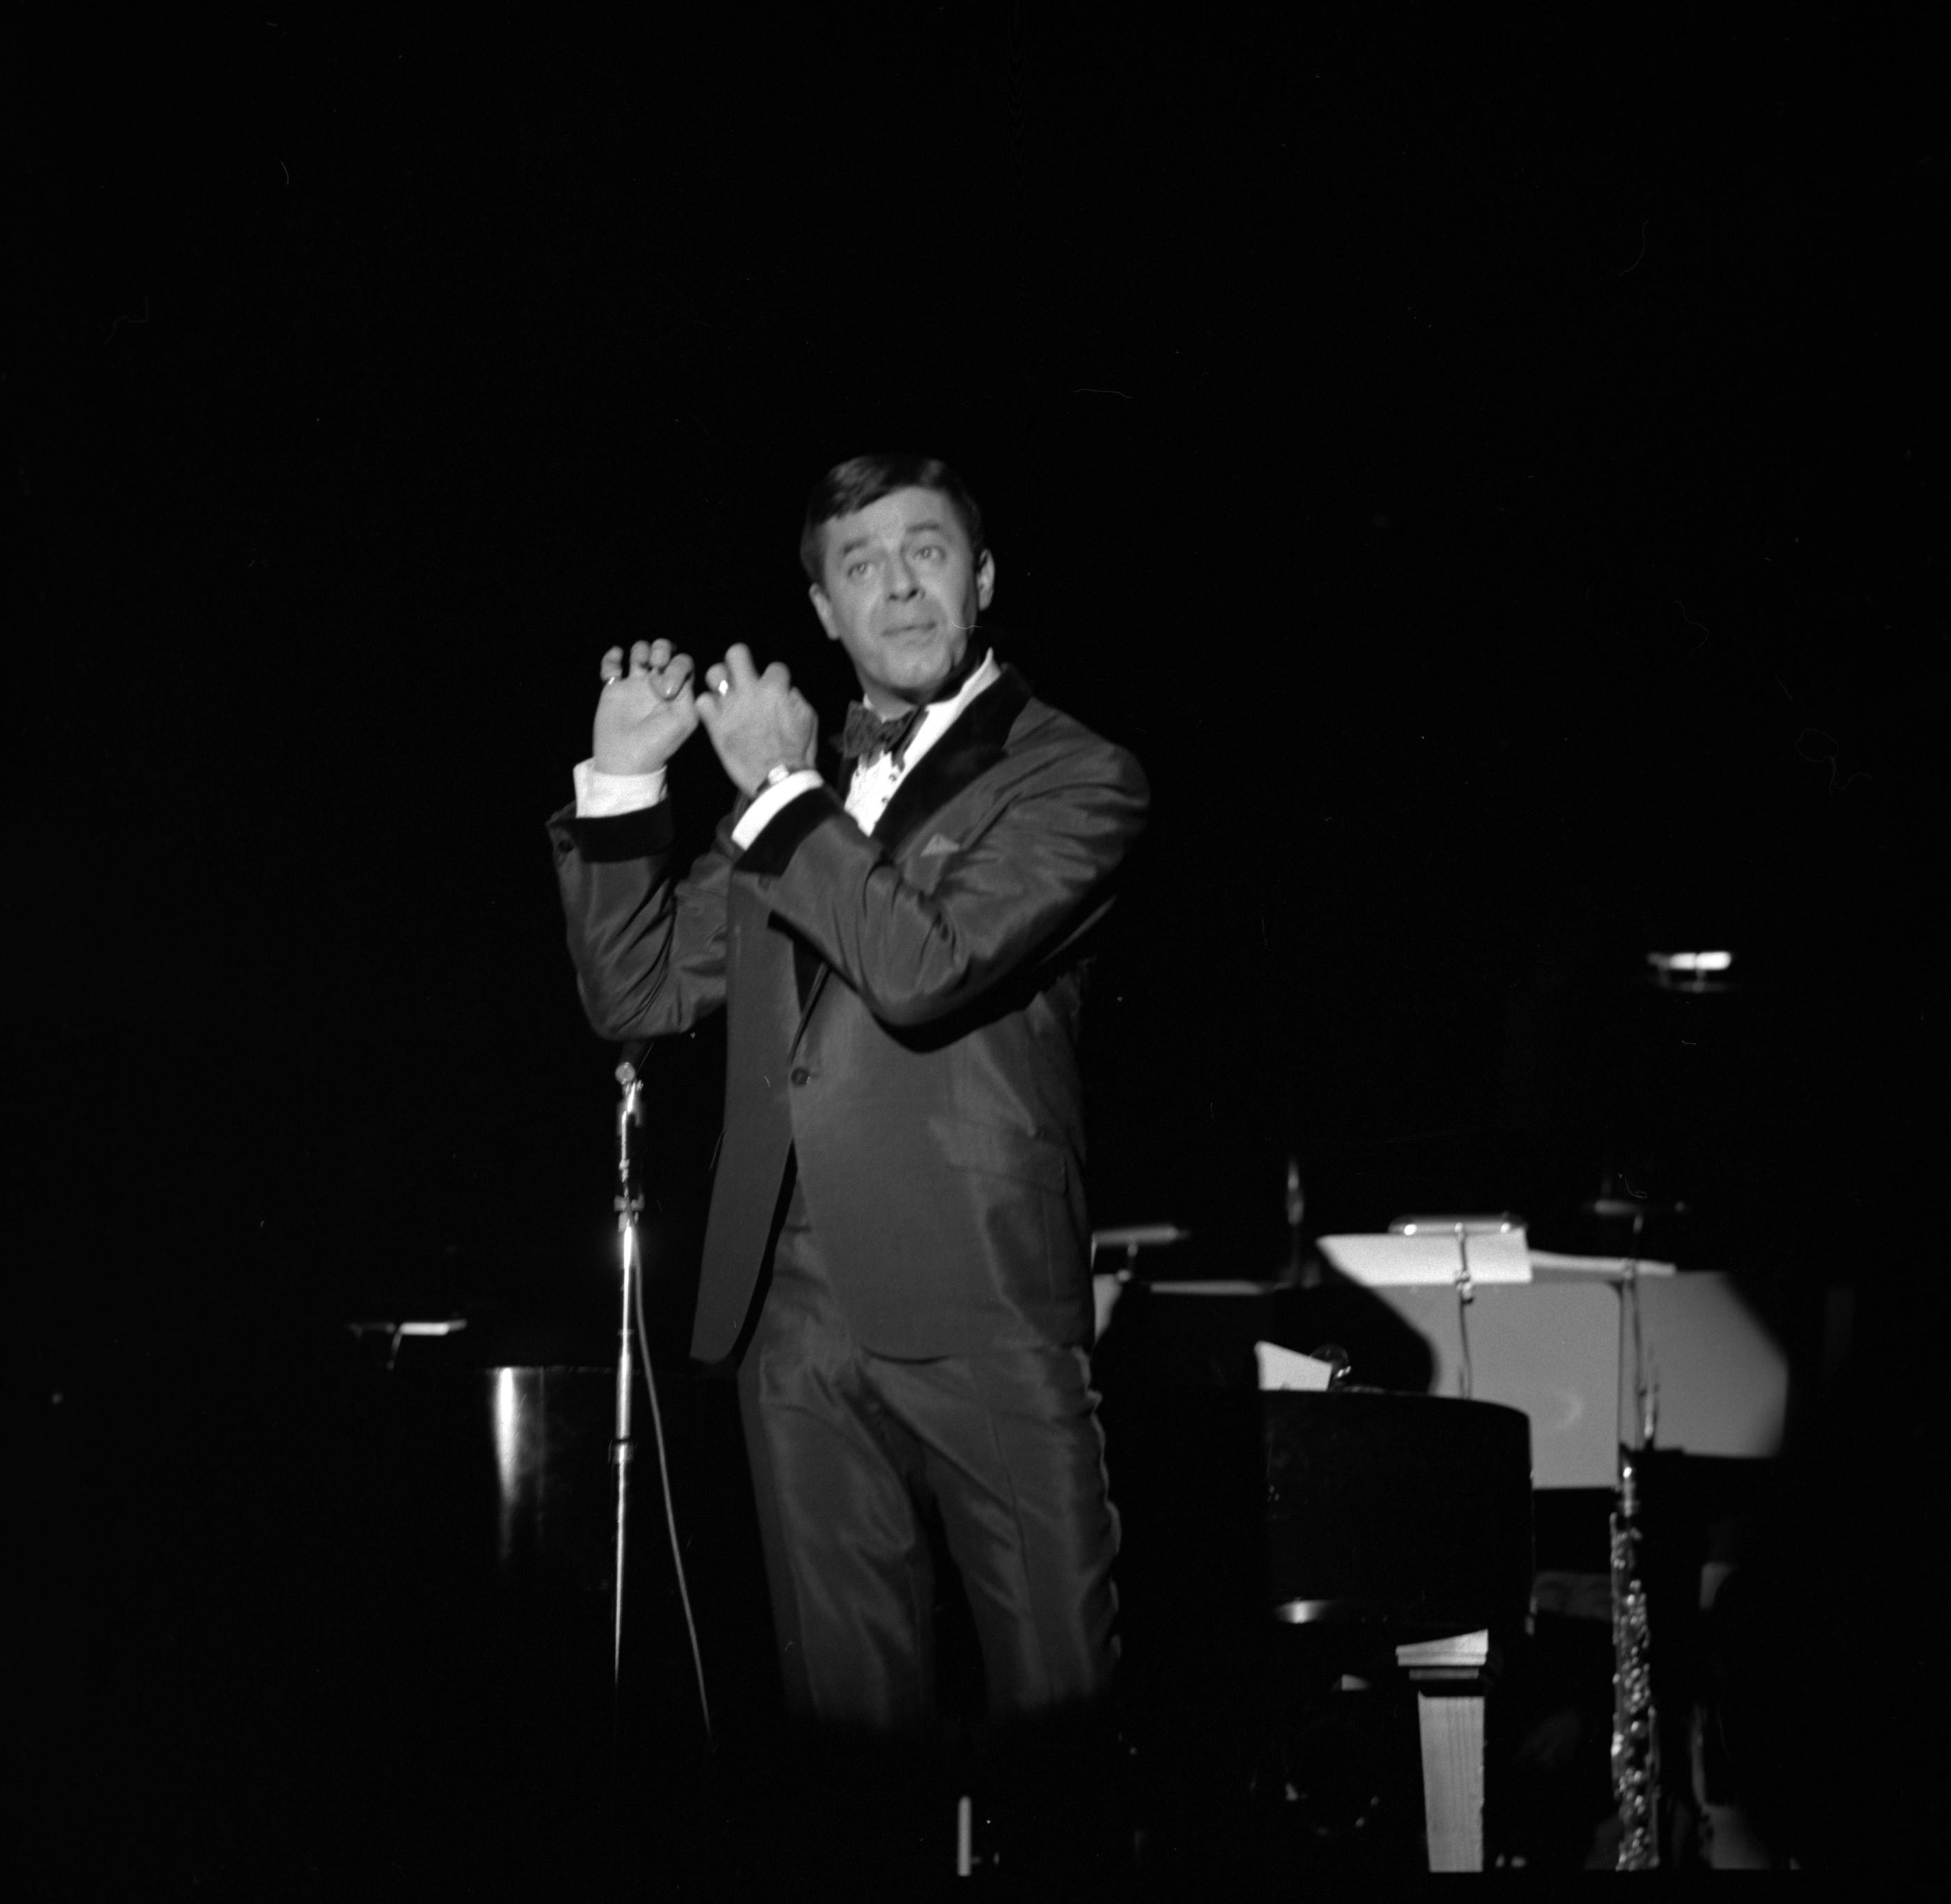 12/6/65 Jerry Lewis at the Sands. CREDIT: Las Vegas News Bureau